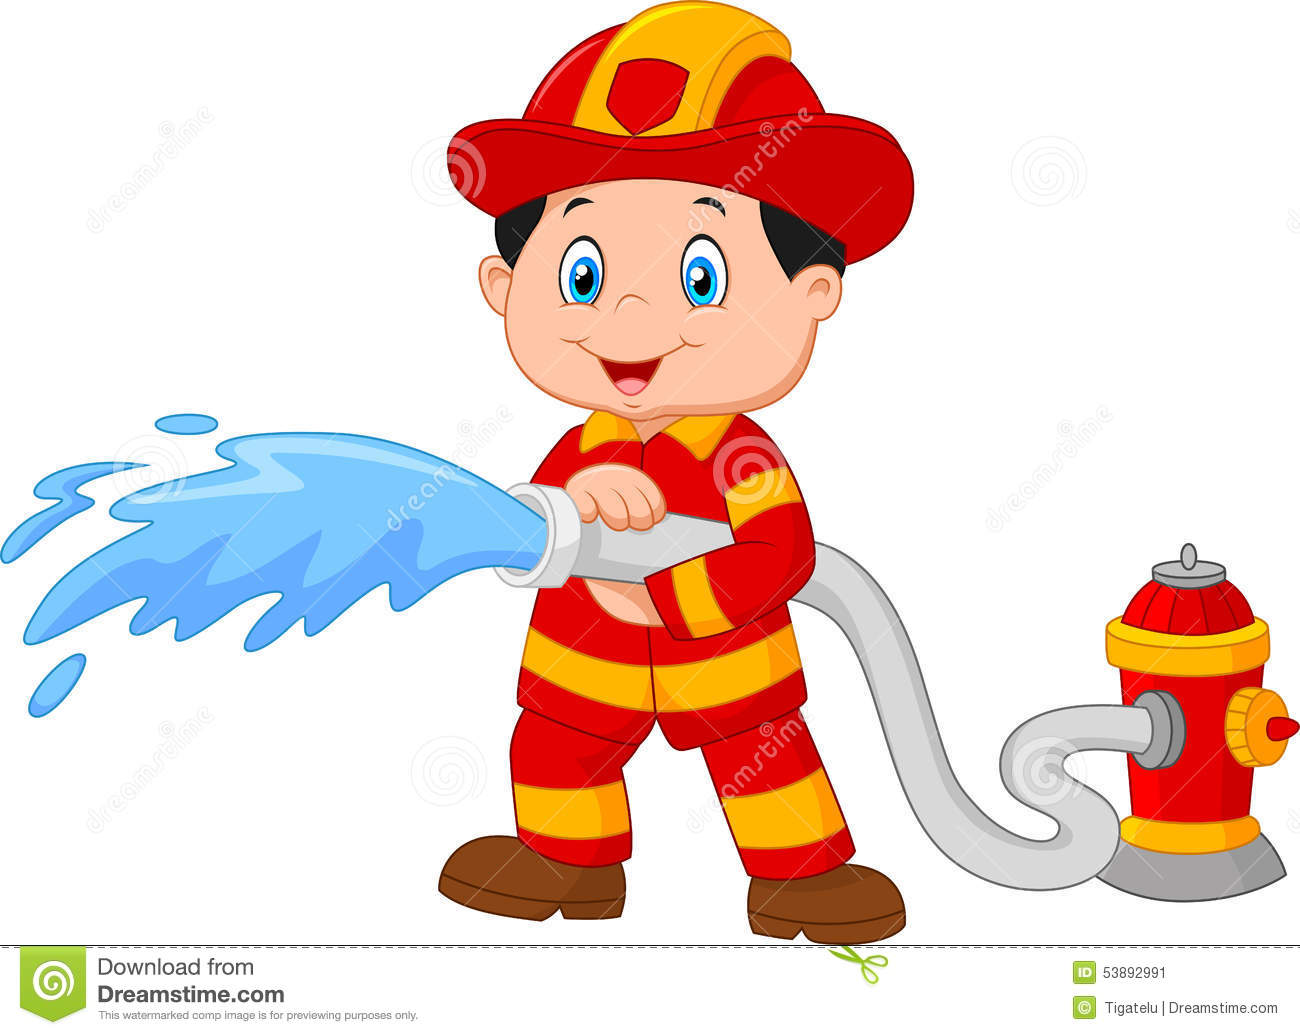 Cartoon Firefighter Pours From A Fire Hose Stock Vector - Image ...